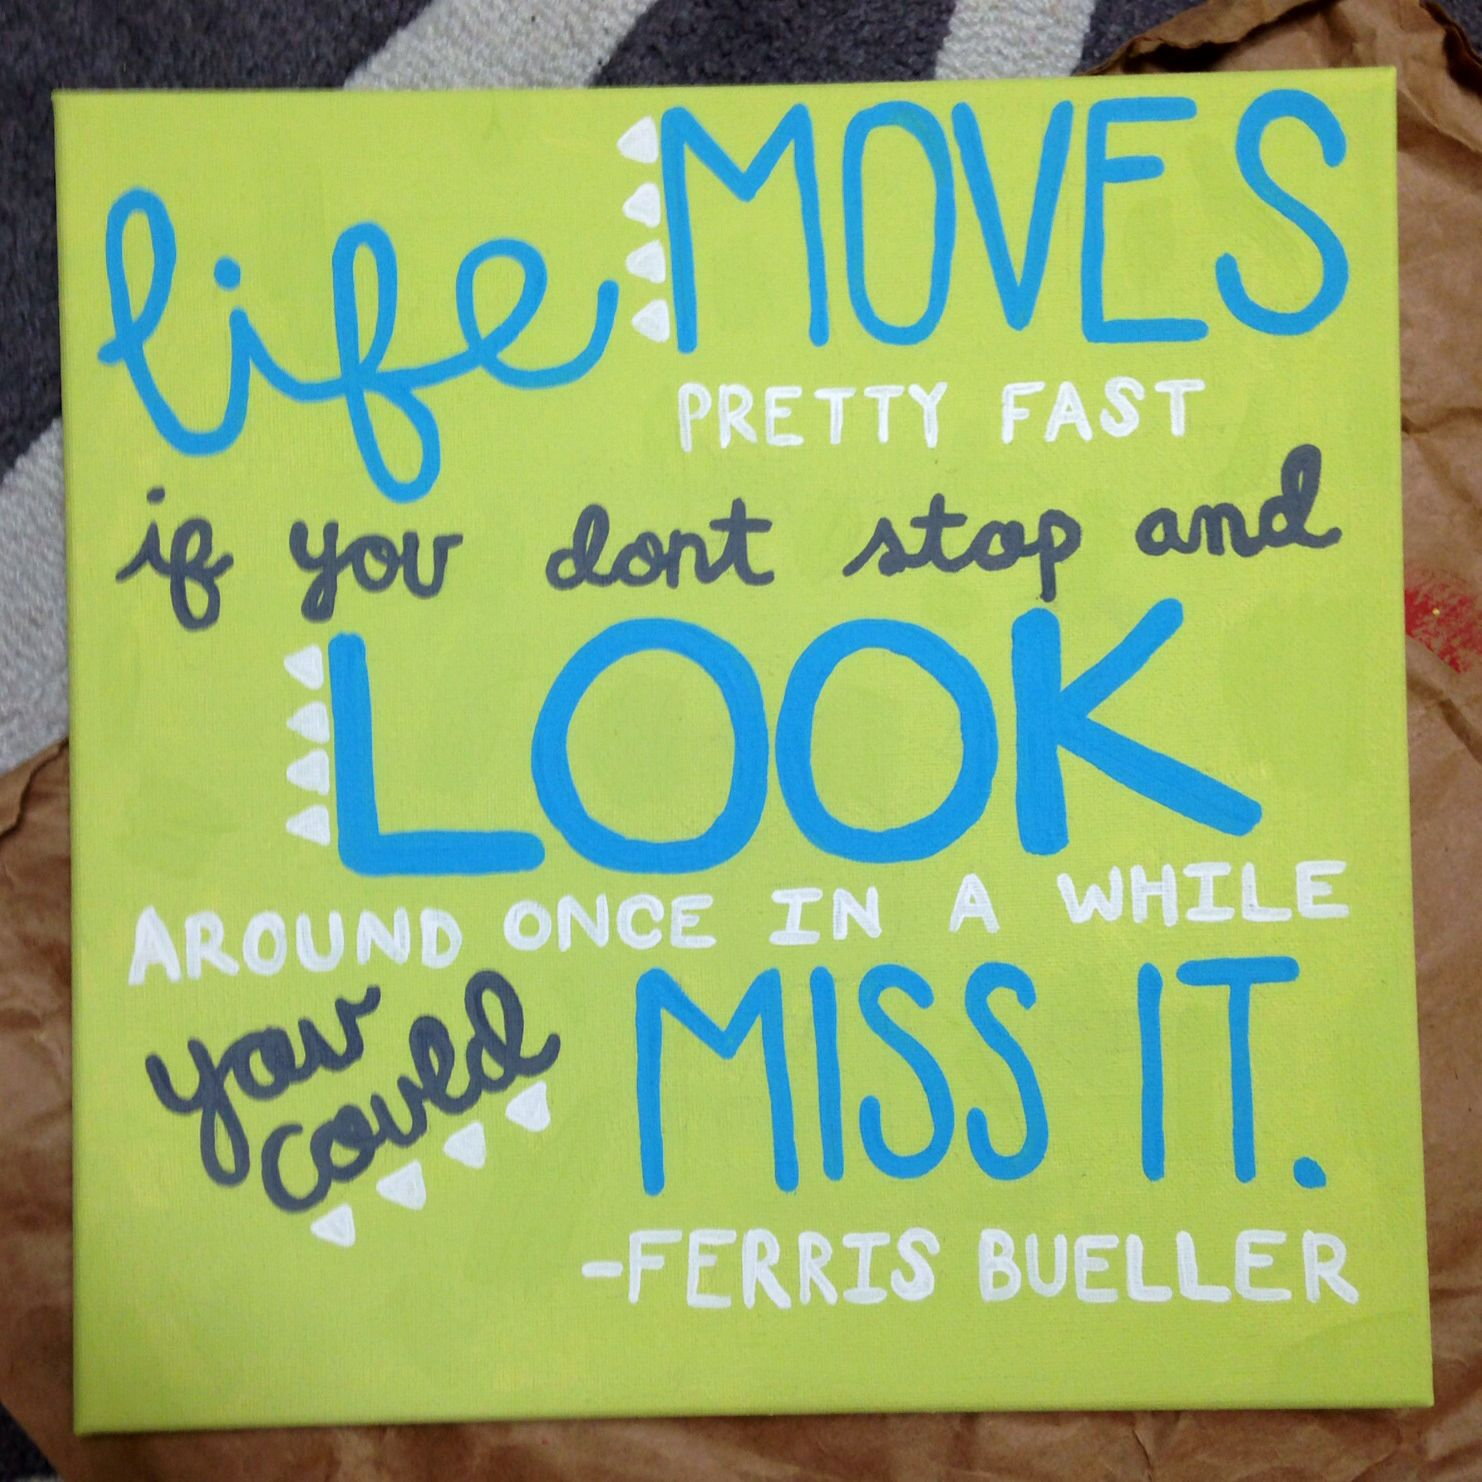 Ferris Bueller Life Moves Pretty Fast Quote Quote Canvasferris Buellerlife Moves Pretty Fast If You Don't